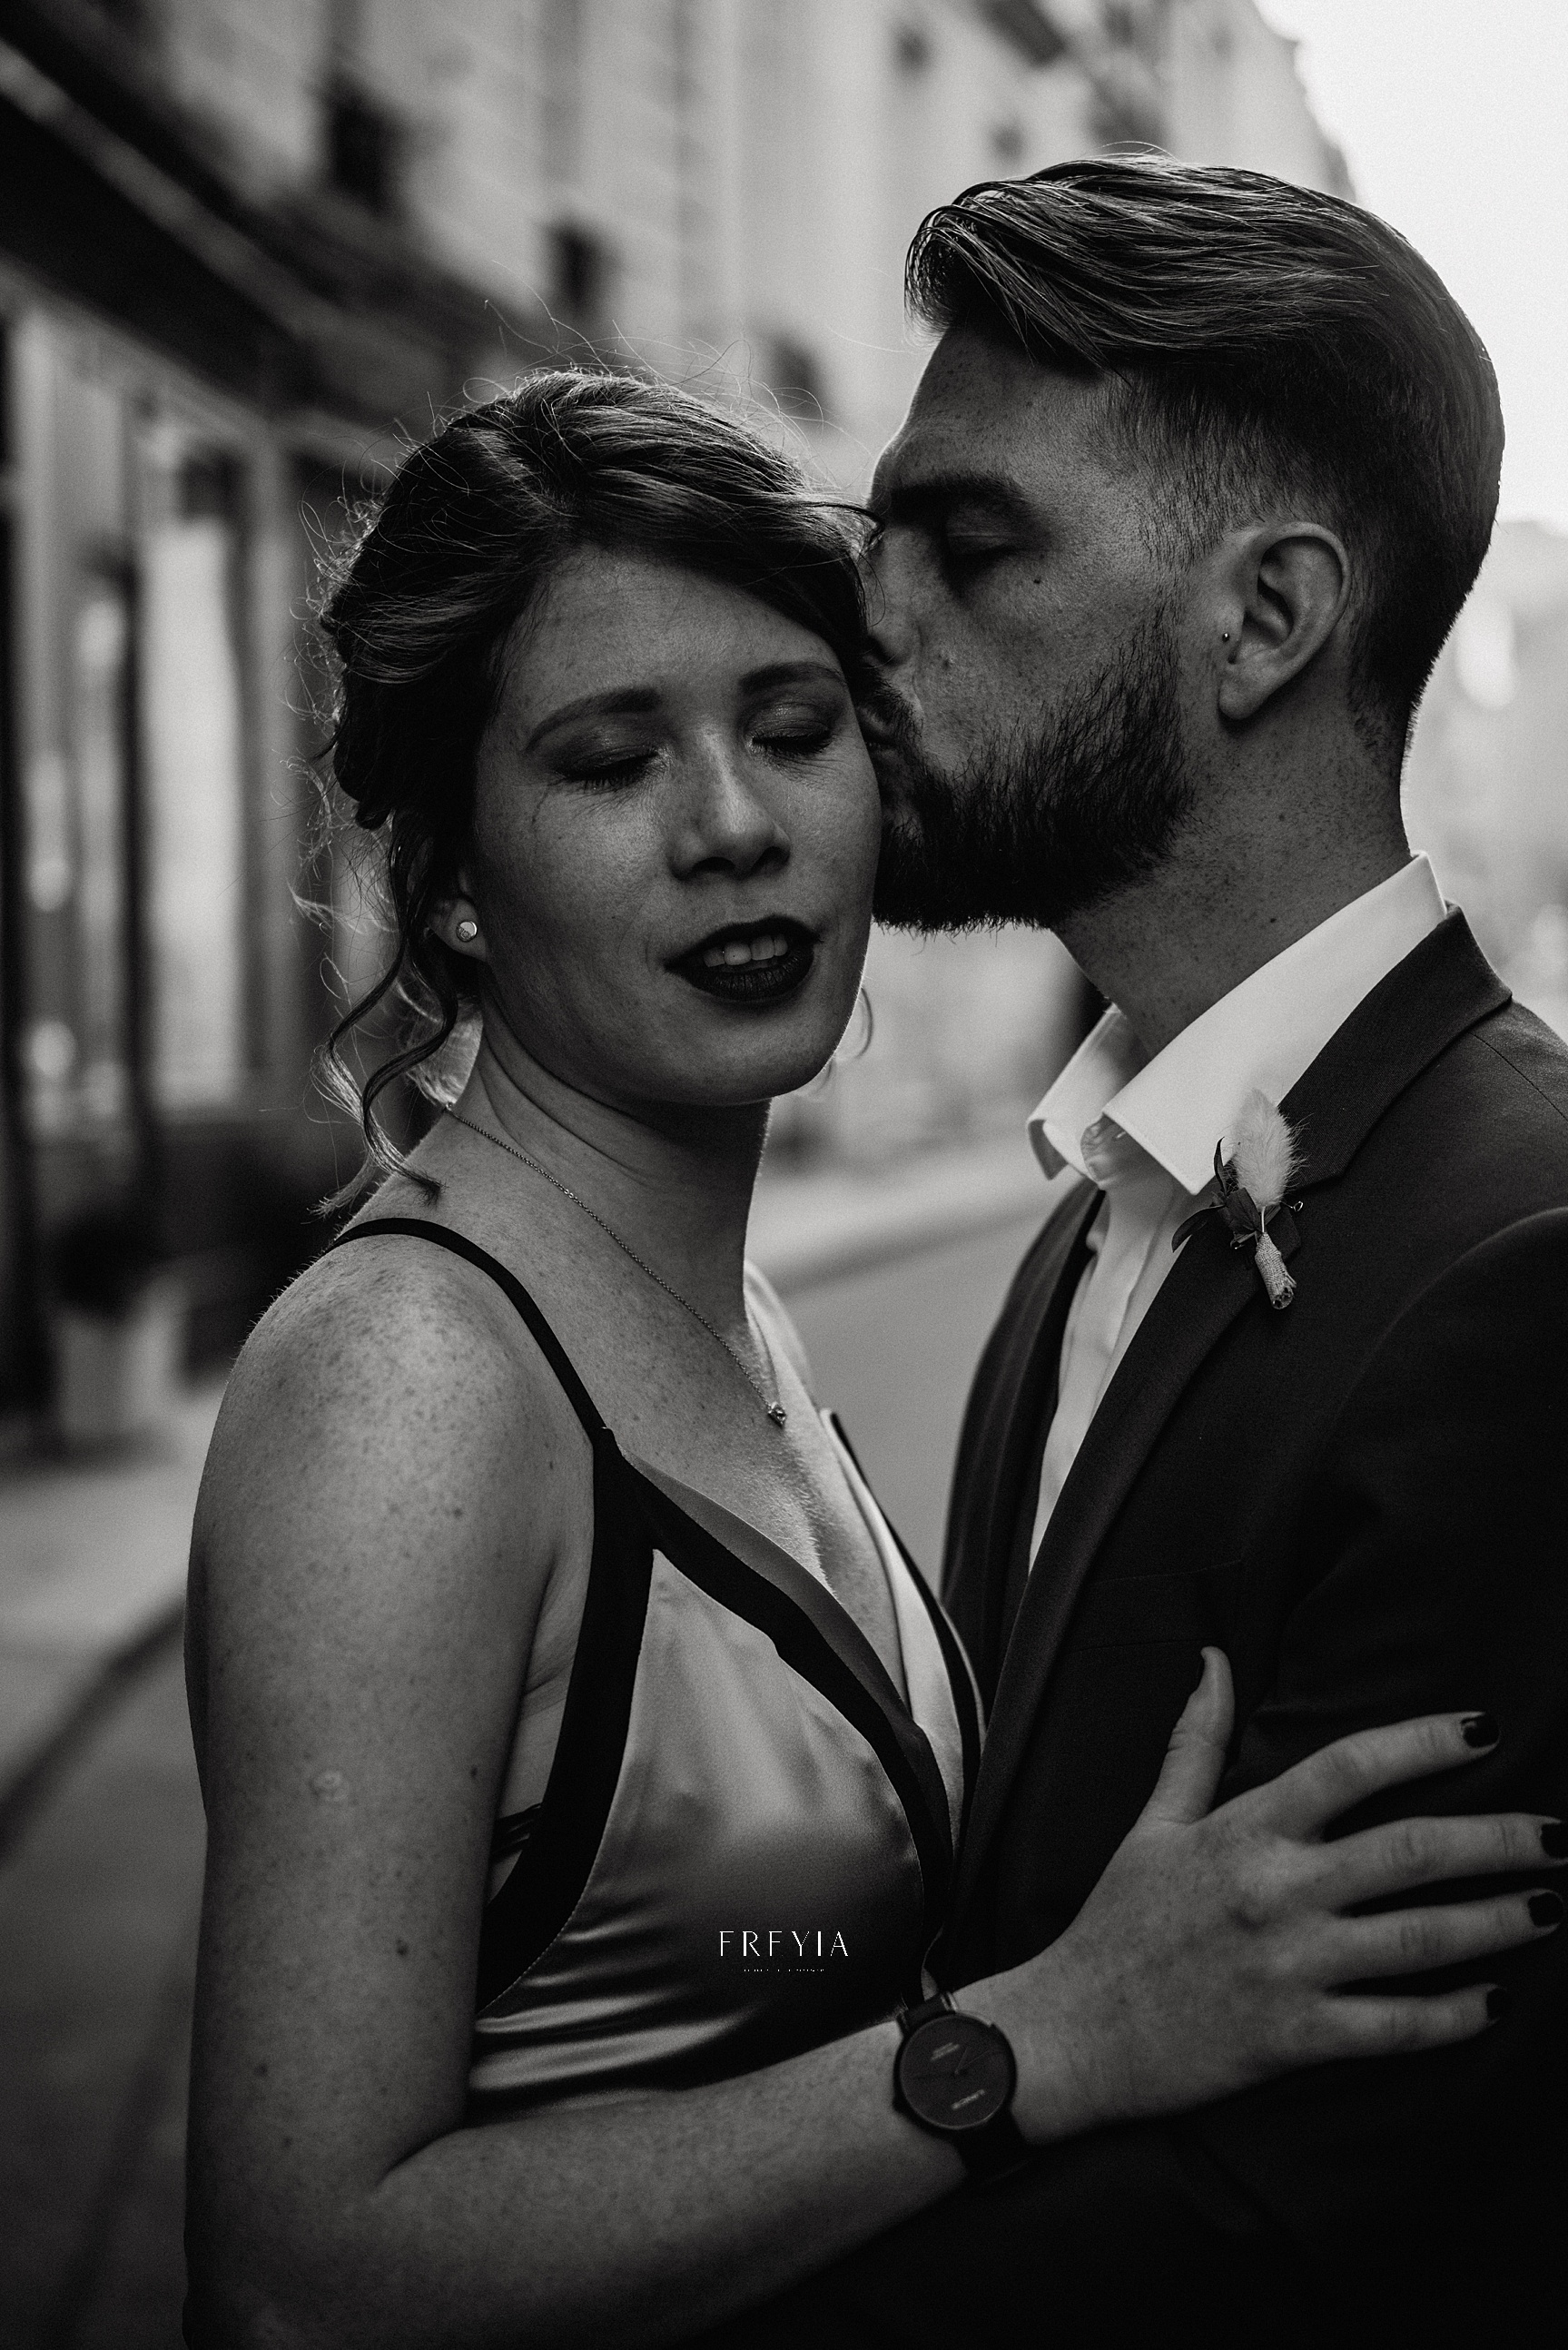 P + F |  mariage reportage alternatif moody intime vintage naturel boho boheme |  PHOTOGRAPHE mariage PARIS france destination  | FREYIA photography_-332.jpg